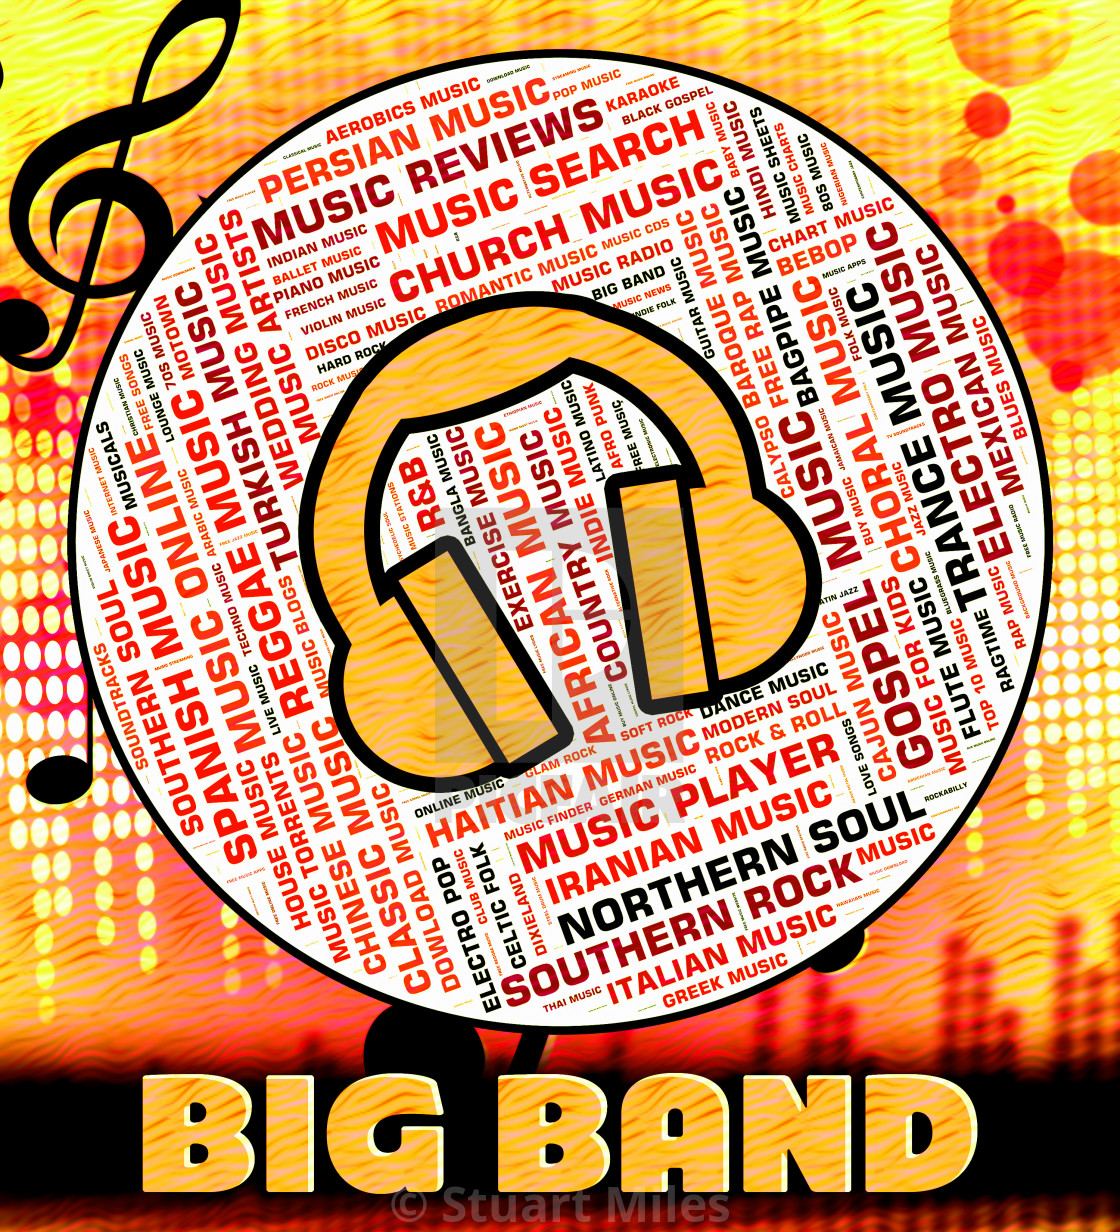 Big Band Music Represents Sound Tracks And Audio - License